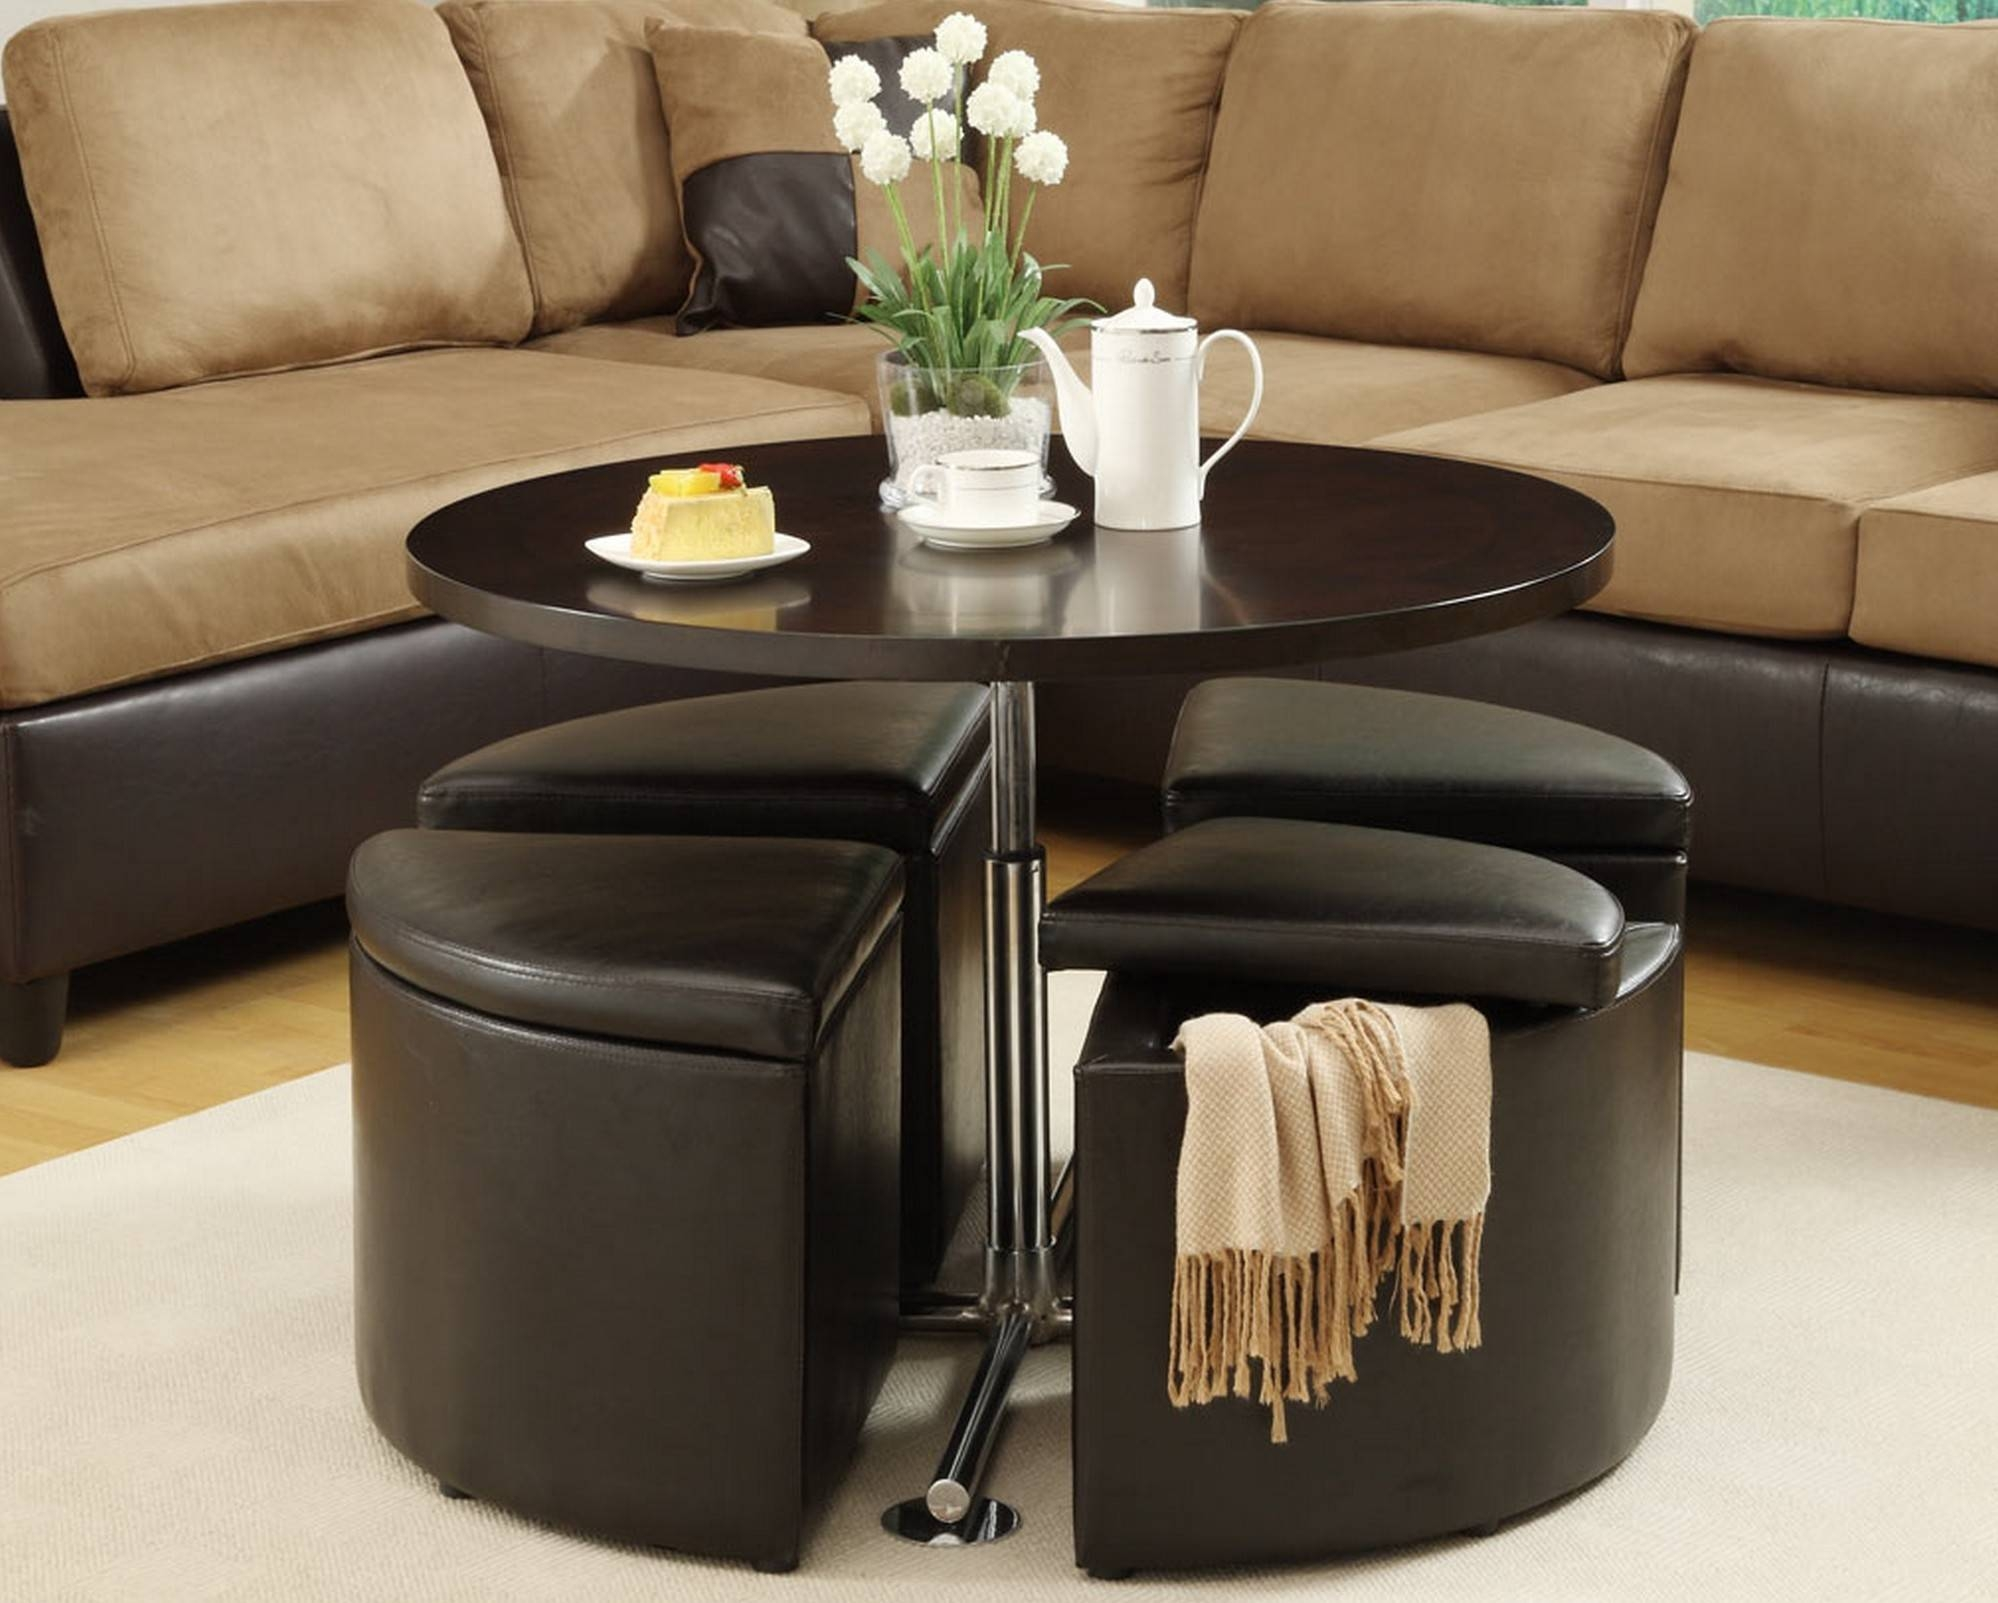 30 Collection of Space Coffee Tables